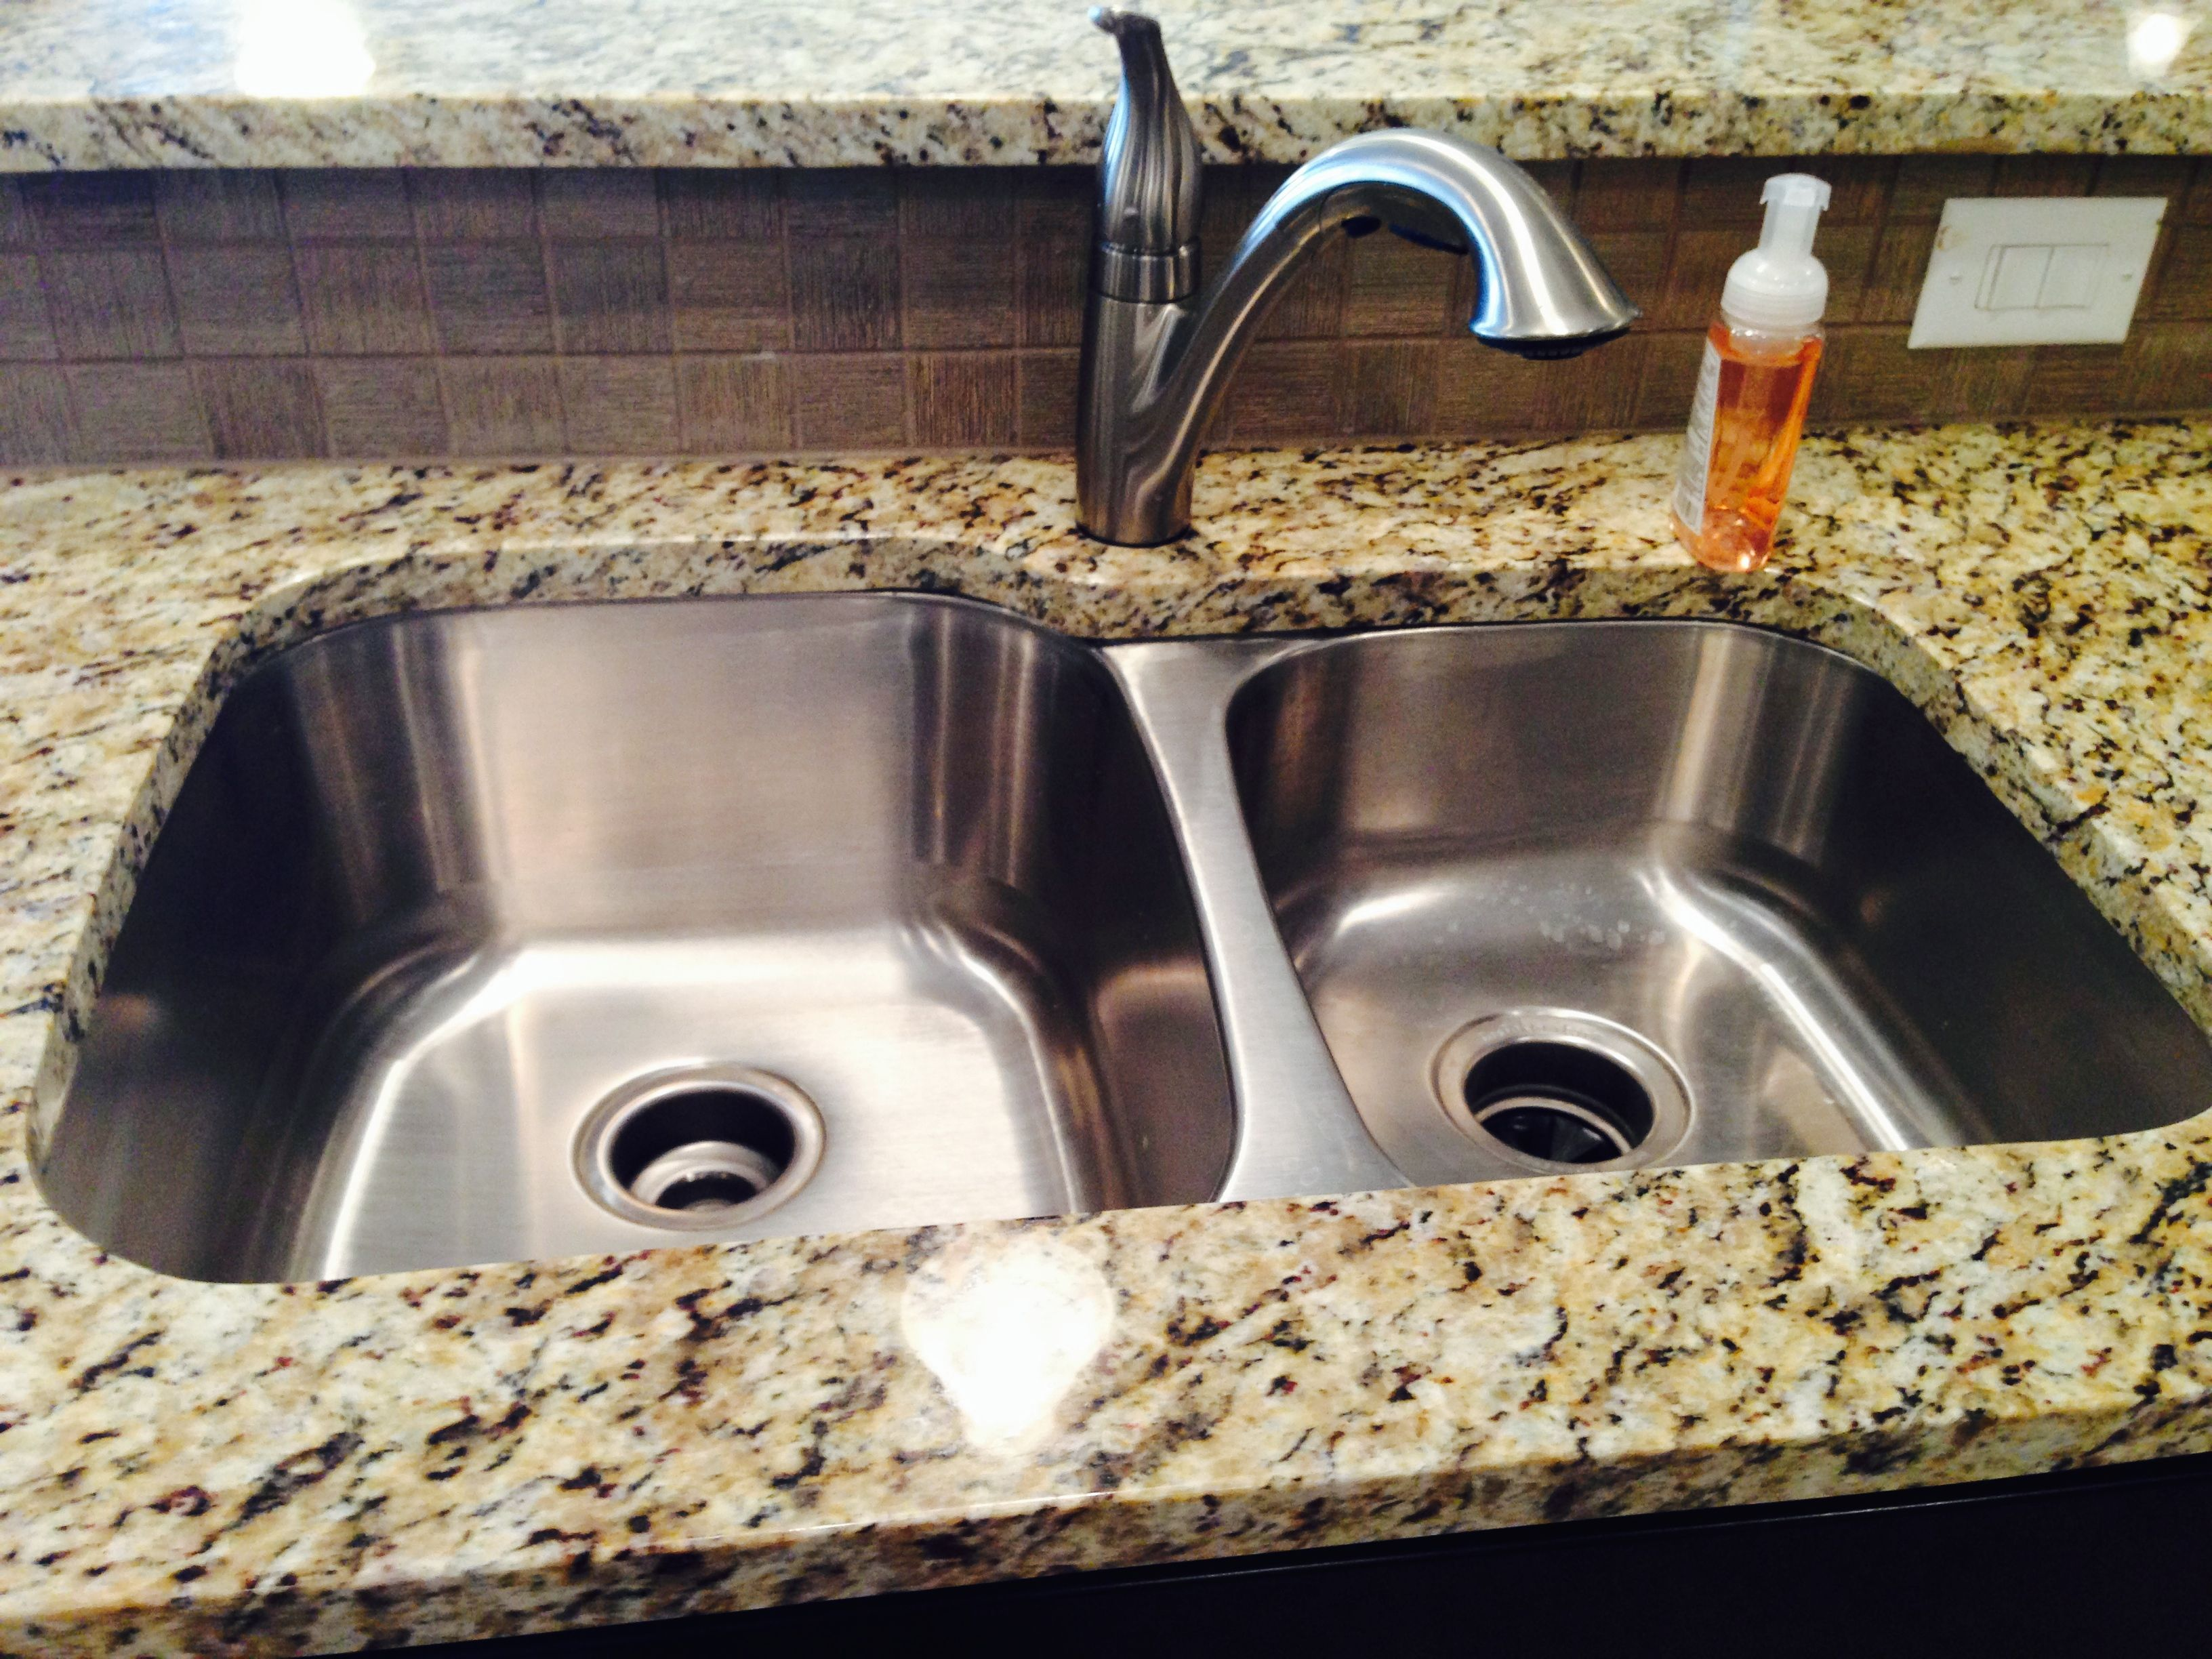 60/40 Stainless Steel Undermount Sink With Granite Countertop, Ceramic Tile  Backsplash And Moen